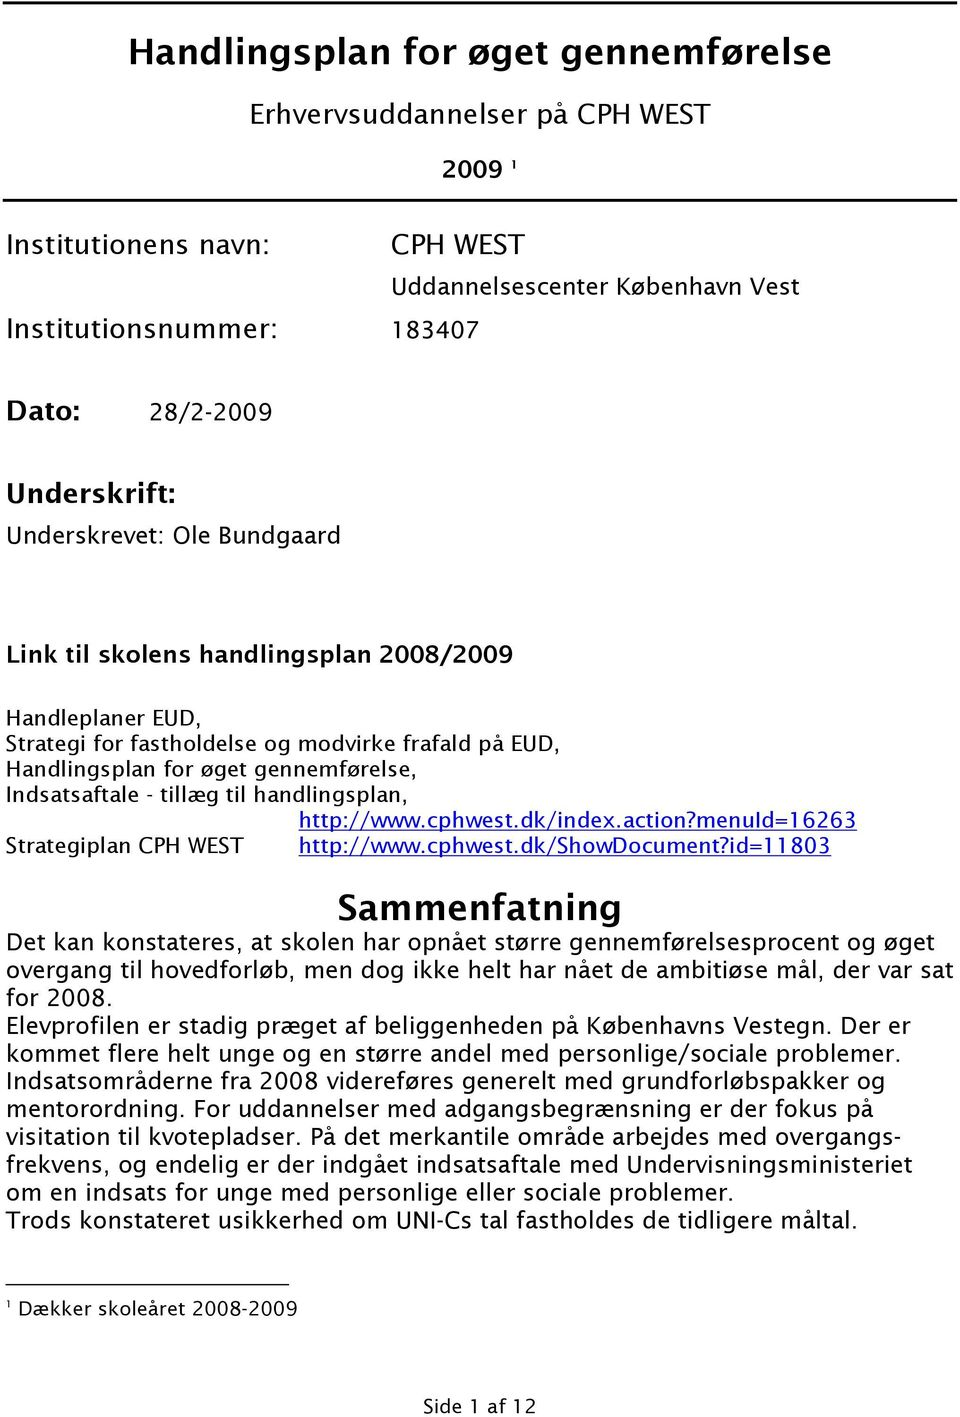 handlingsplan, http://www.cphwest.dk/index.action?menuid=16263 Strategiplan http://www.cphwest.dk/showdocument?